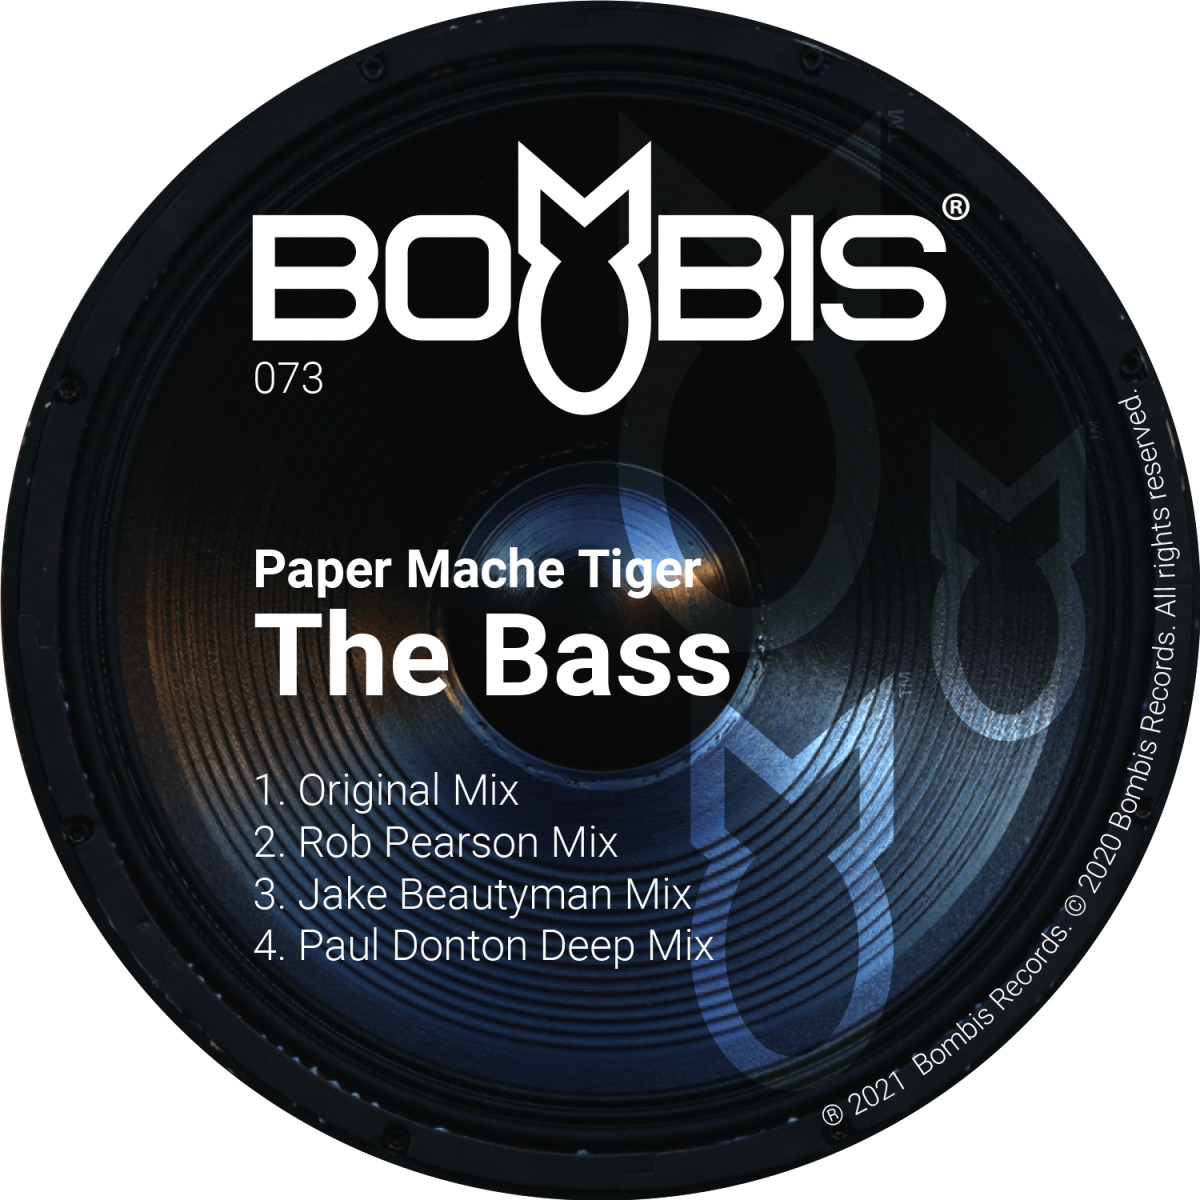 PaperMacheTiger - The Bass [Bombis]